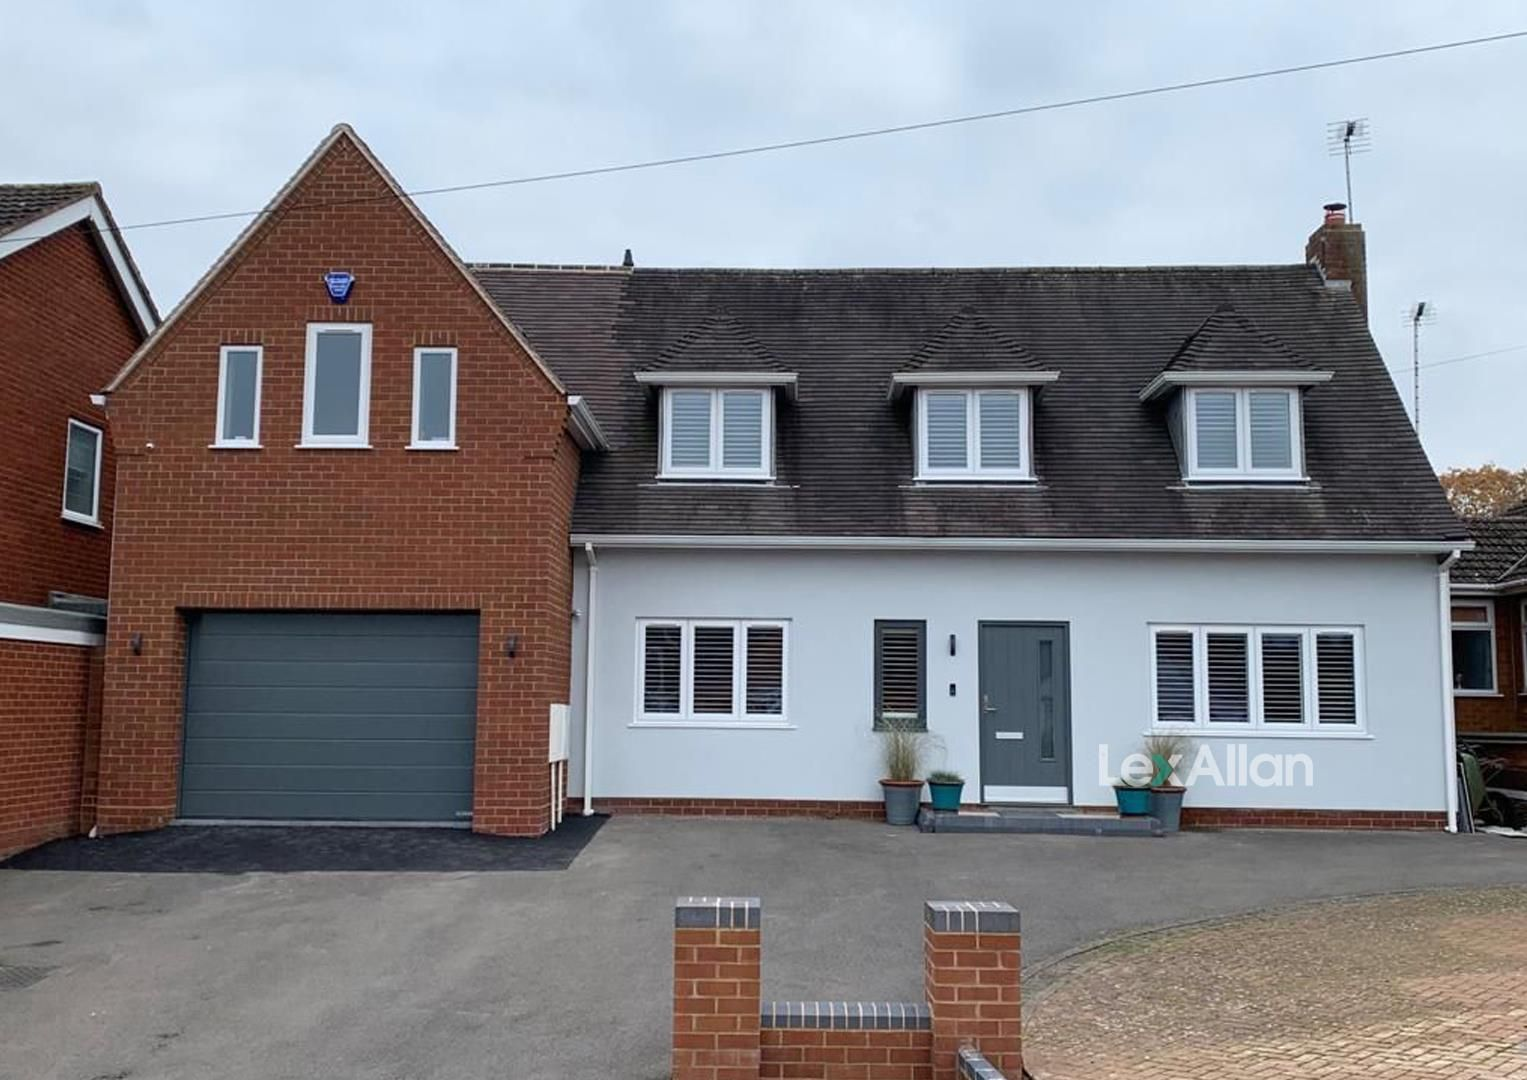 4 bed house for sale in Norton 1